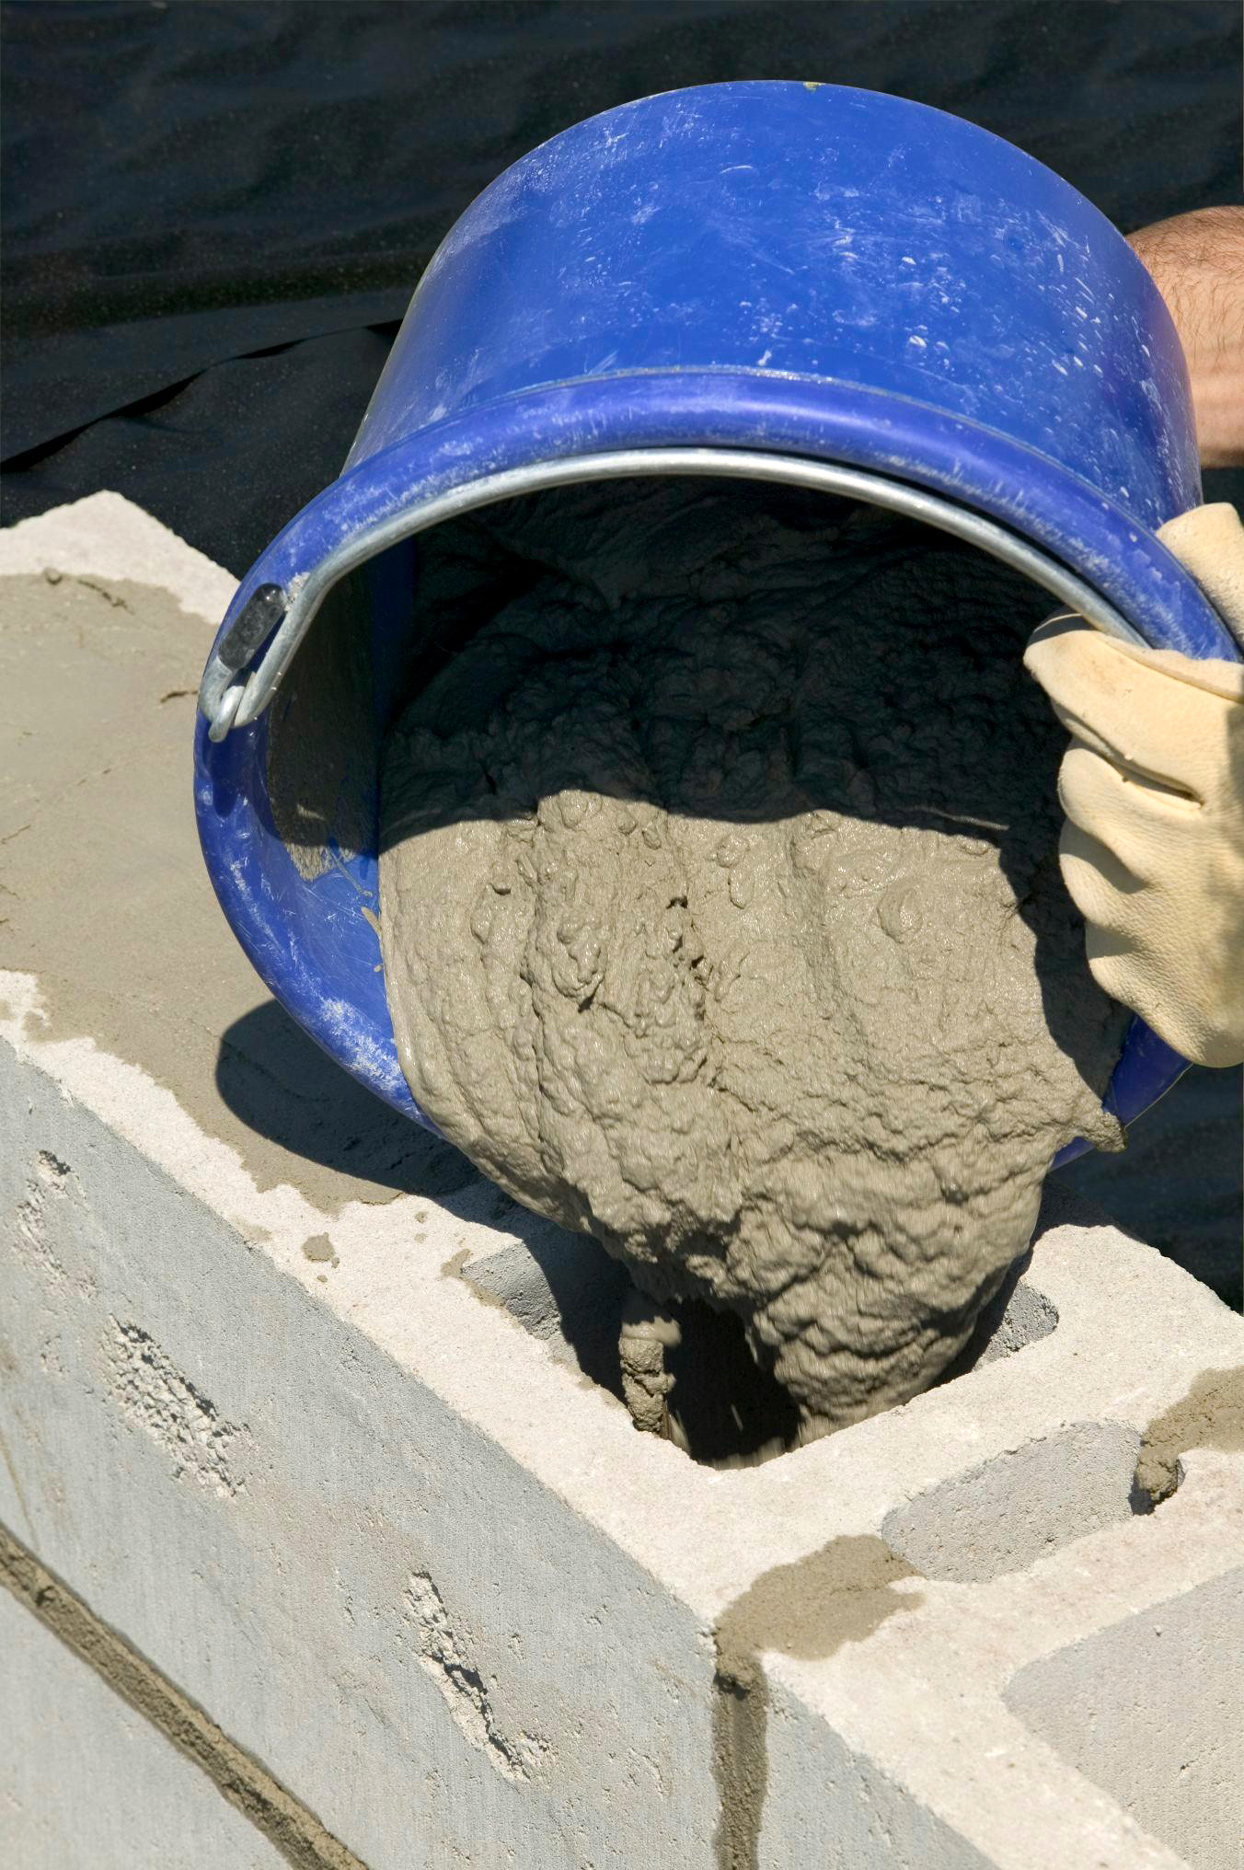 Fill with Mortar